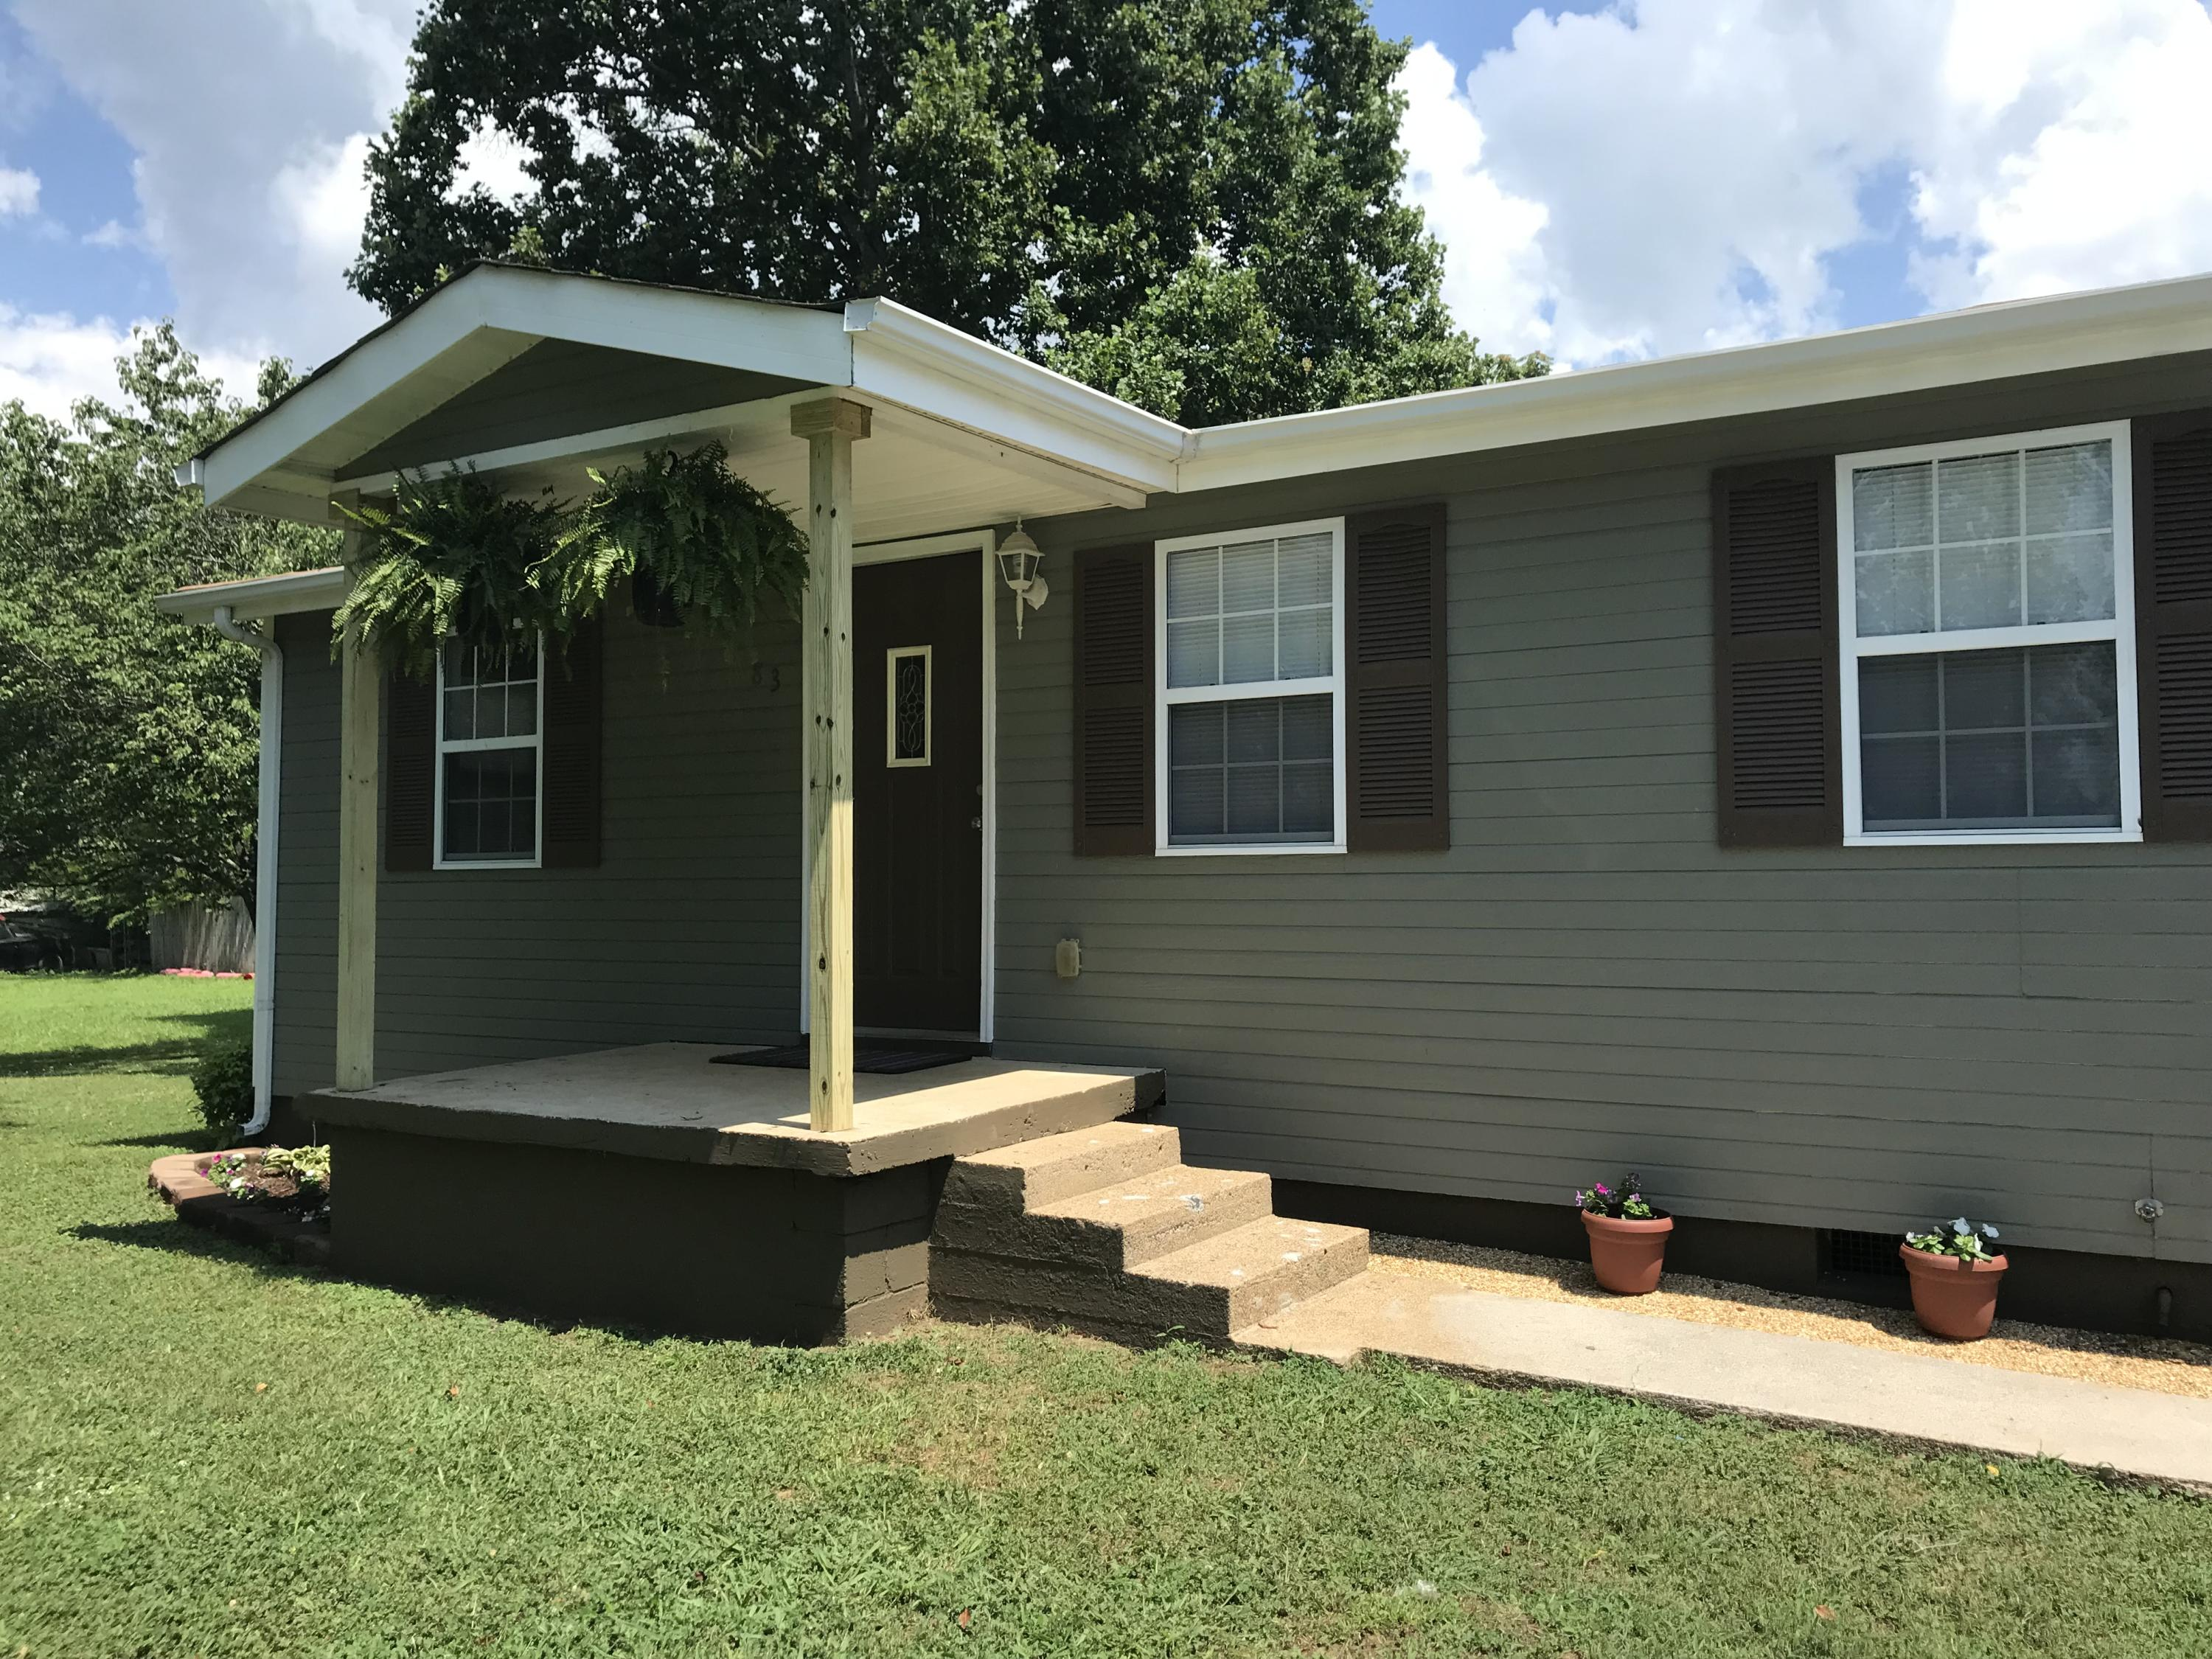 83 Mcdonough St, Dunlap, TN 37327